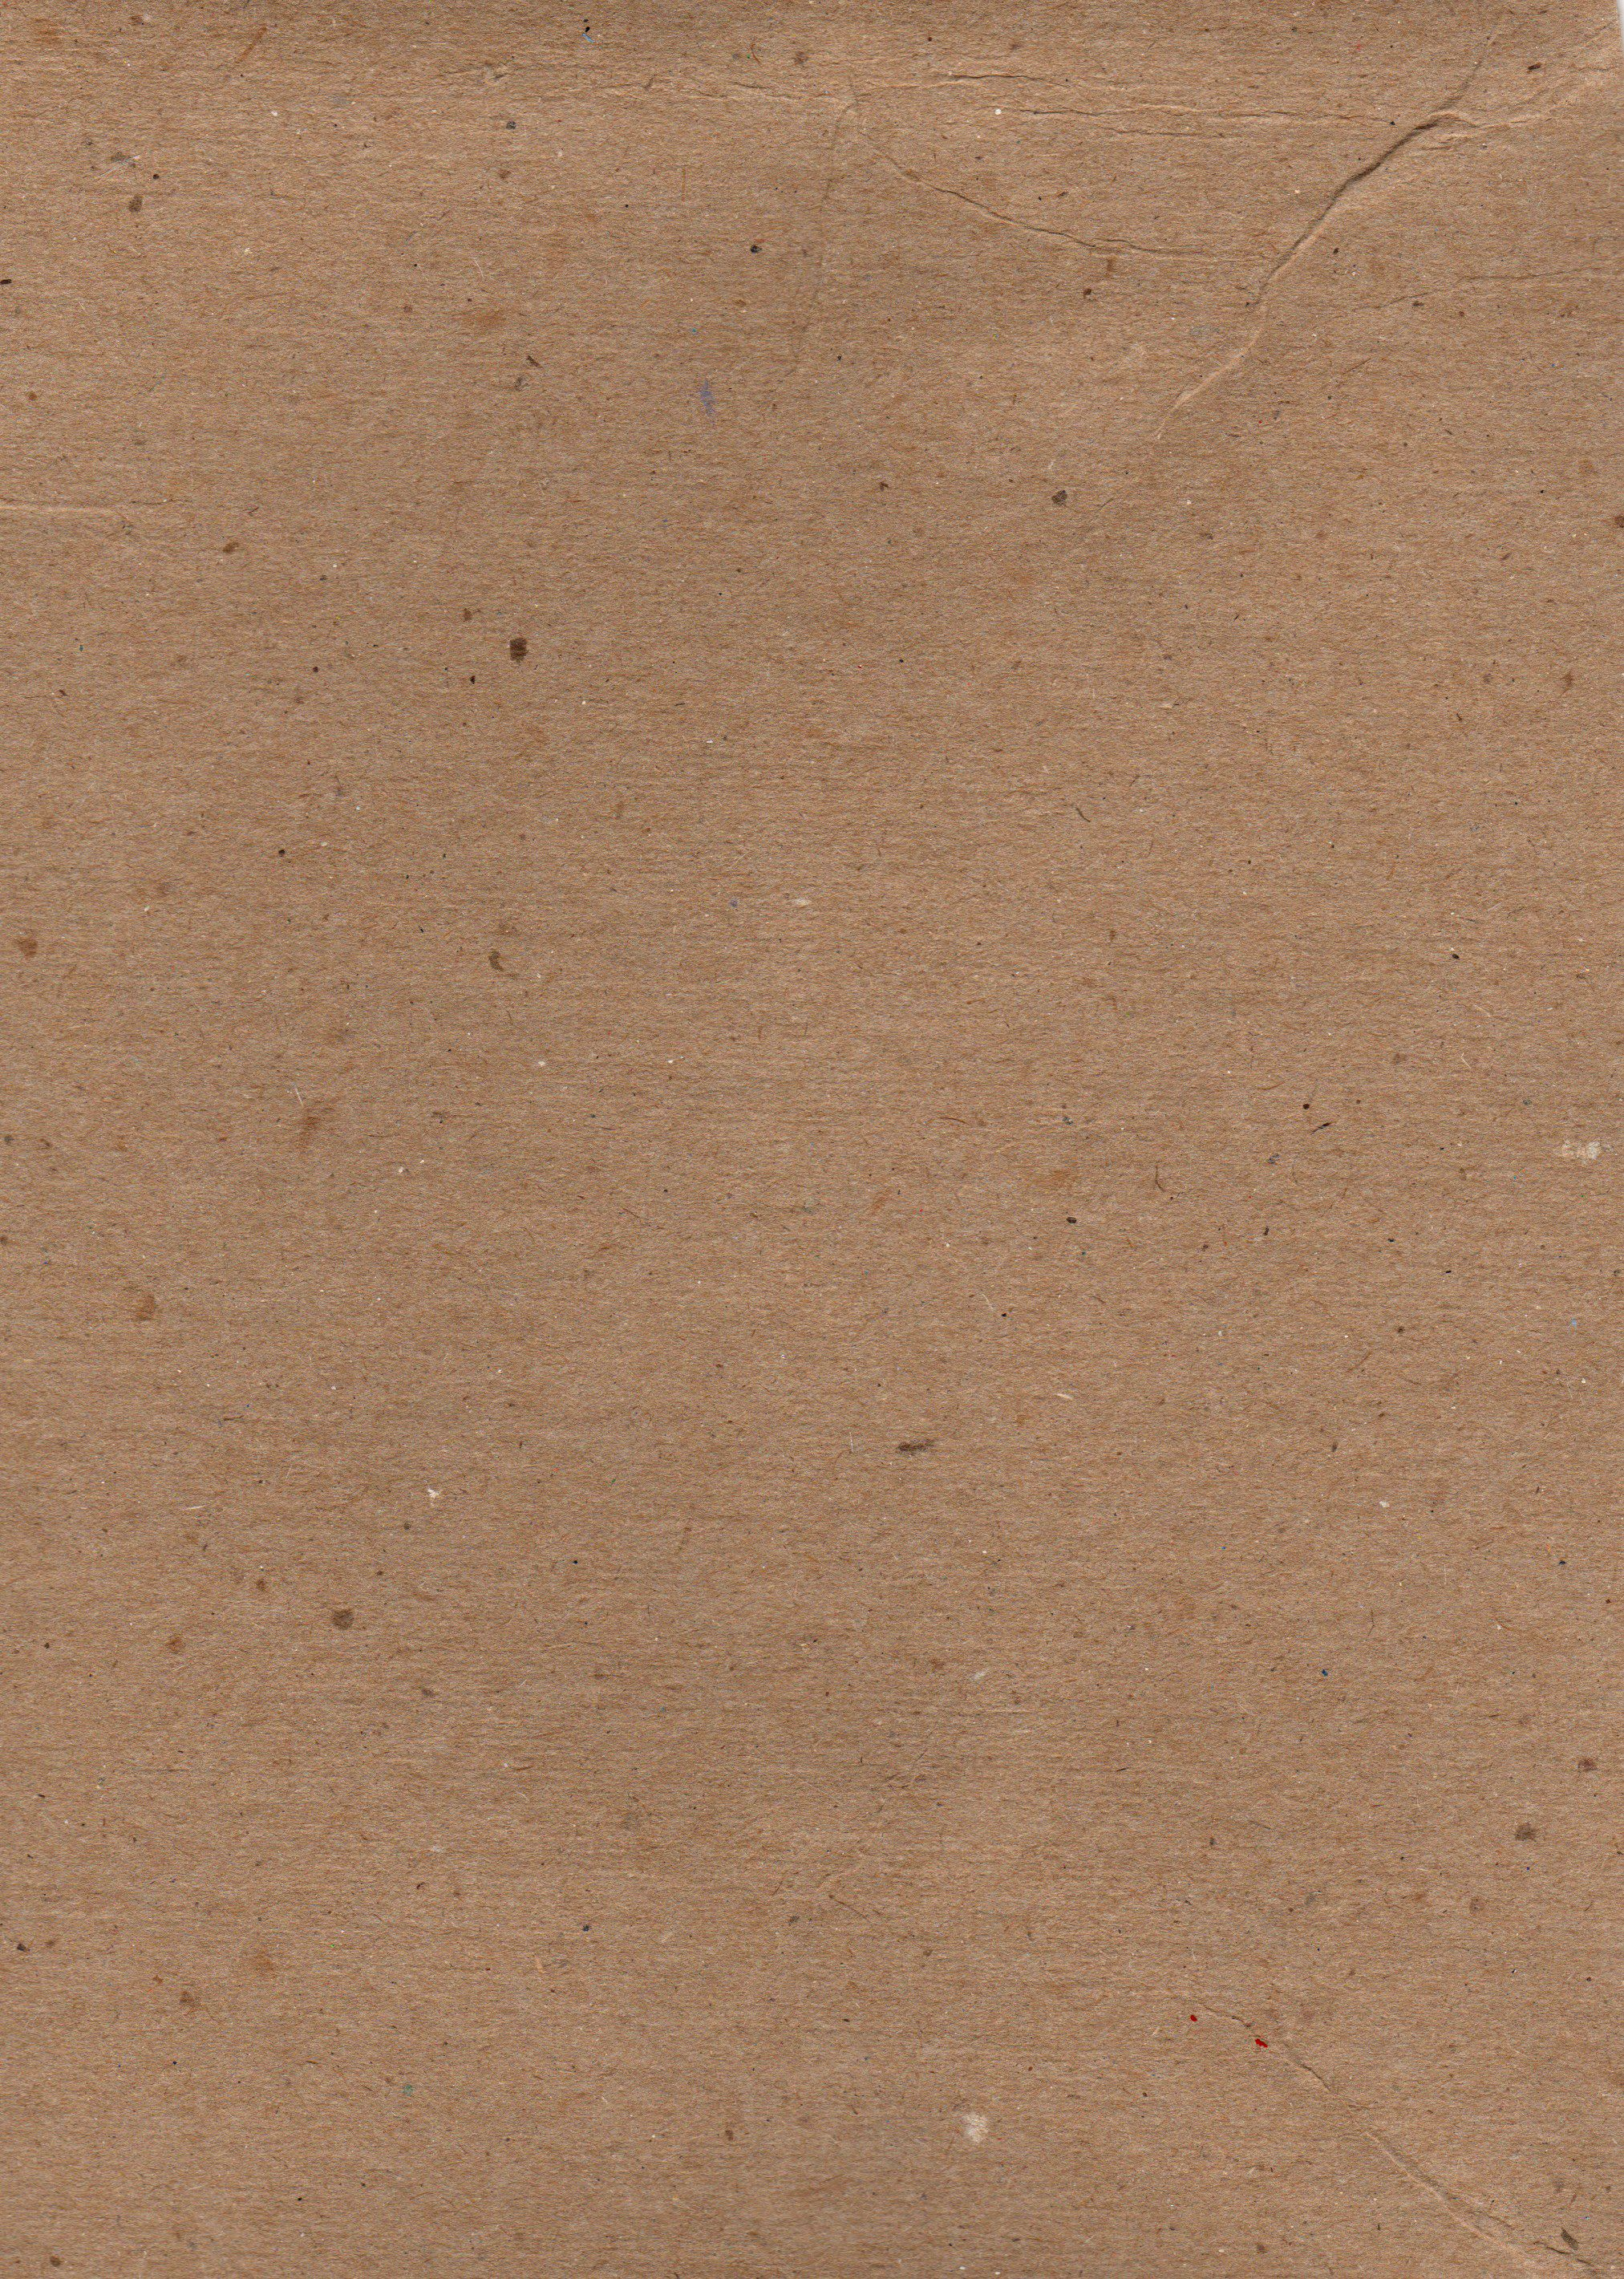 Brown Paper And Cardboard Texture